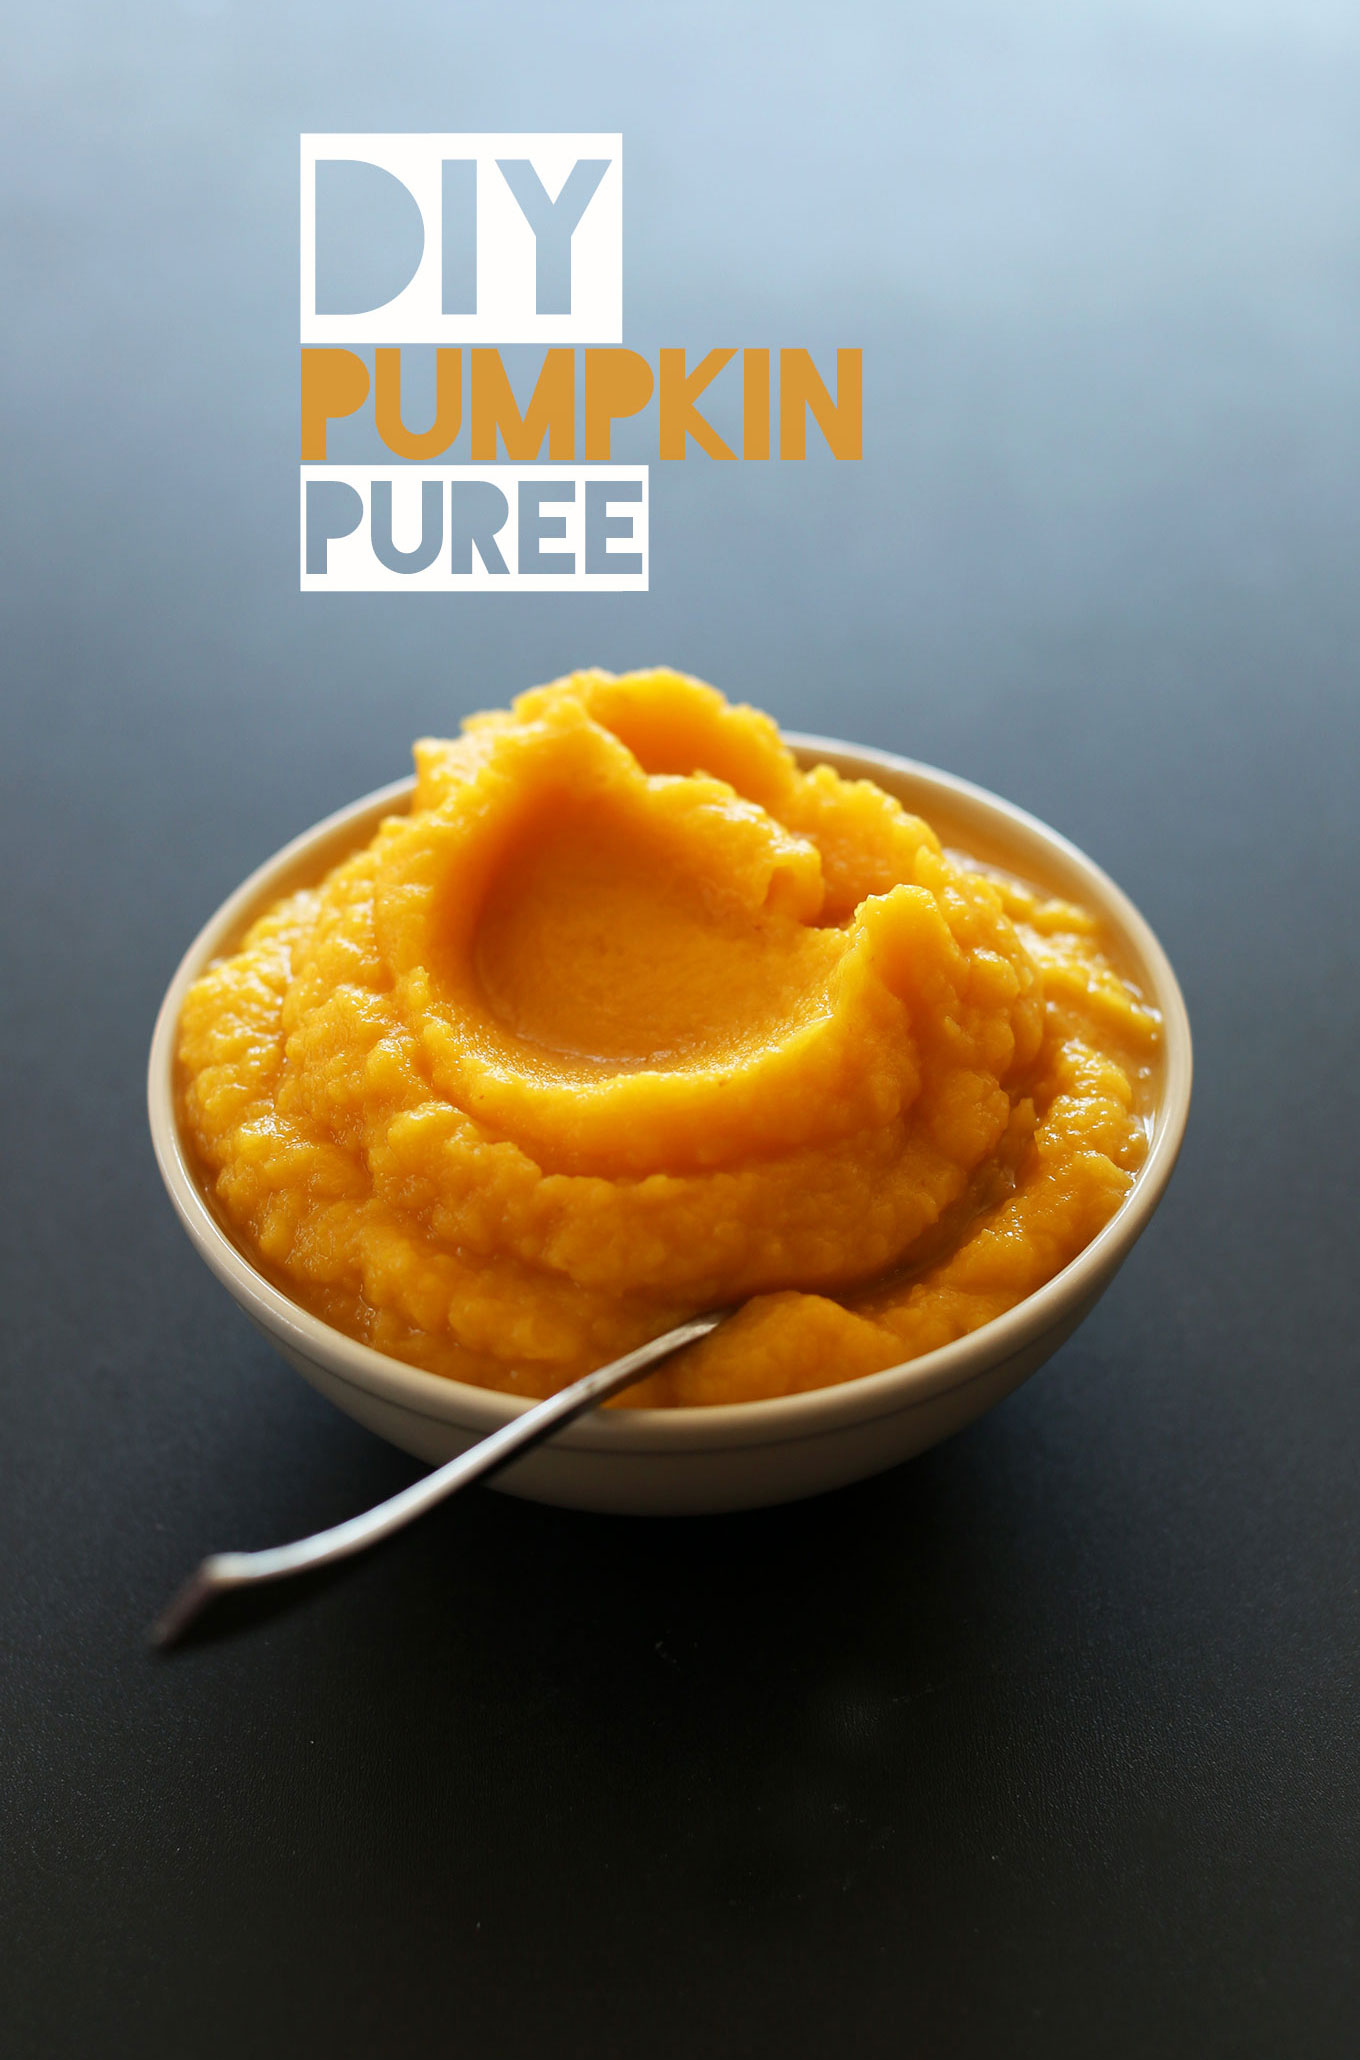 Bowl of our DIY Pumpkin Puree